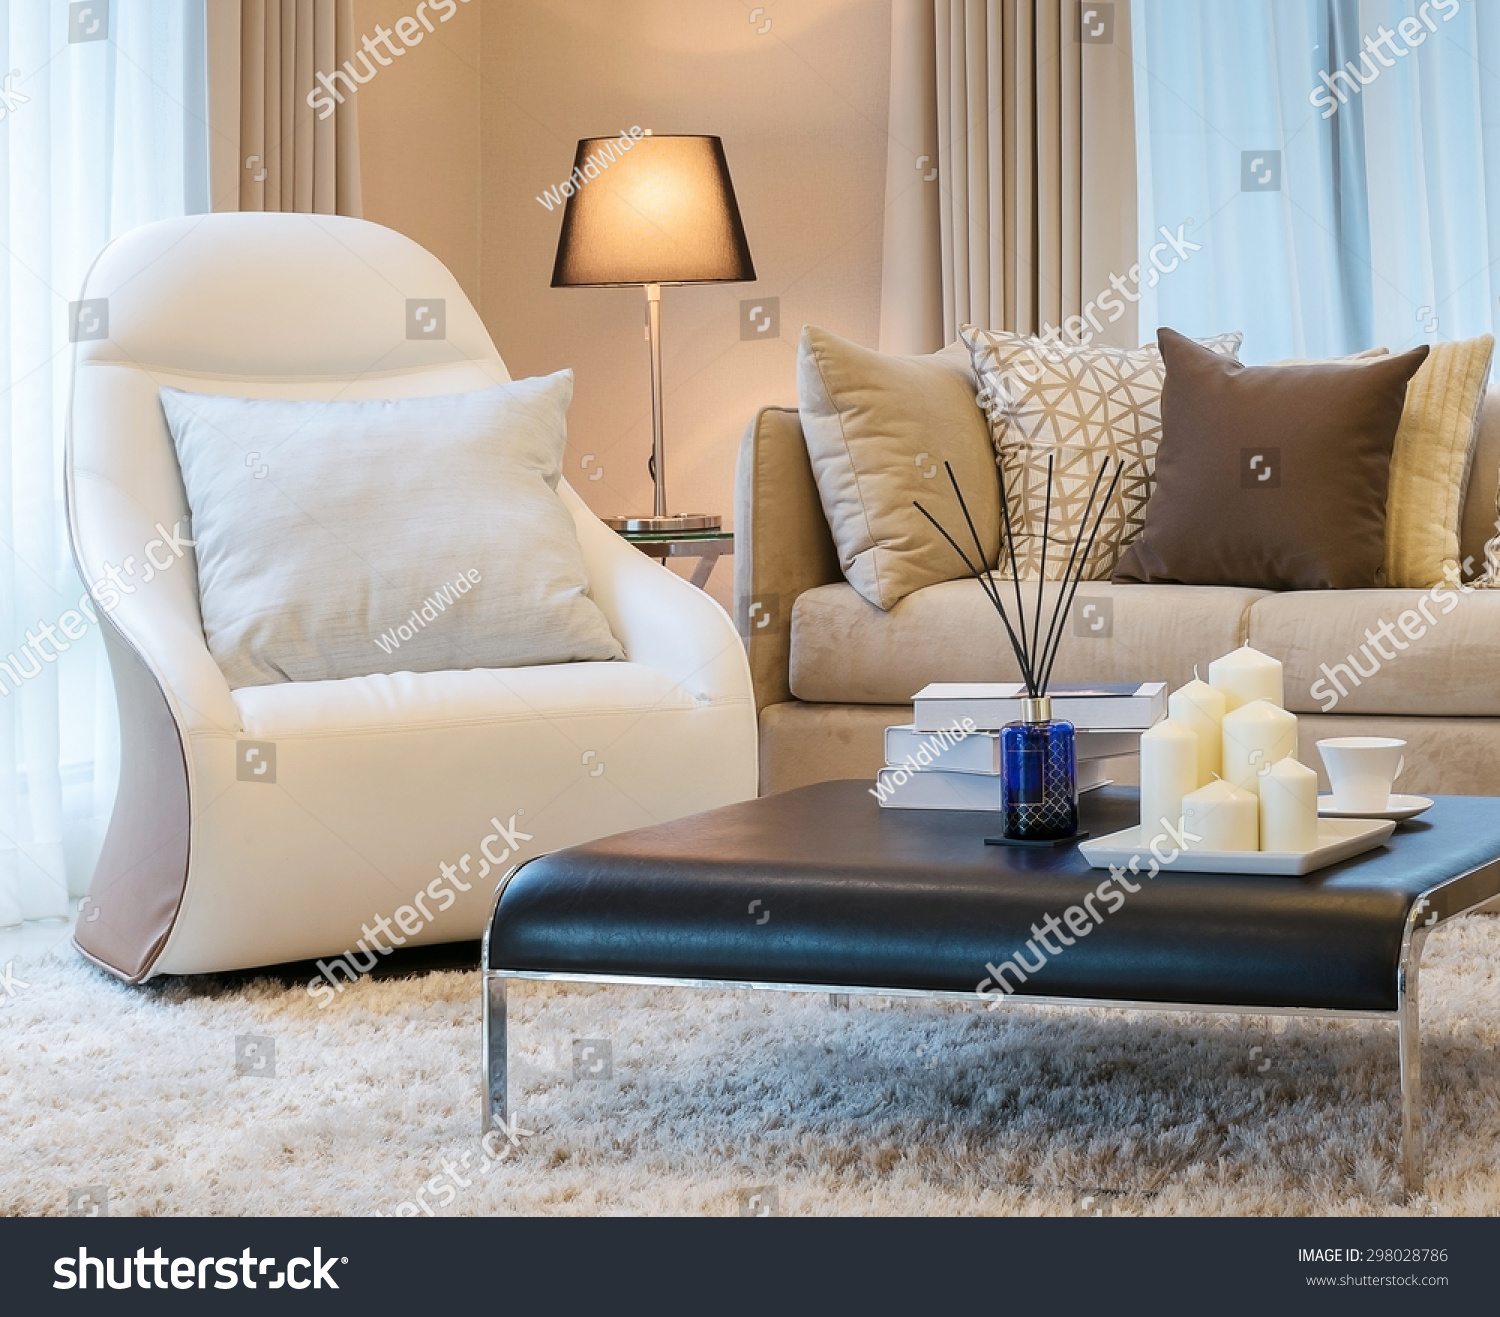 Modern Living Room Design Sofa Brown Stock Photo 298028786 Shutterstock